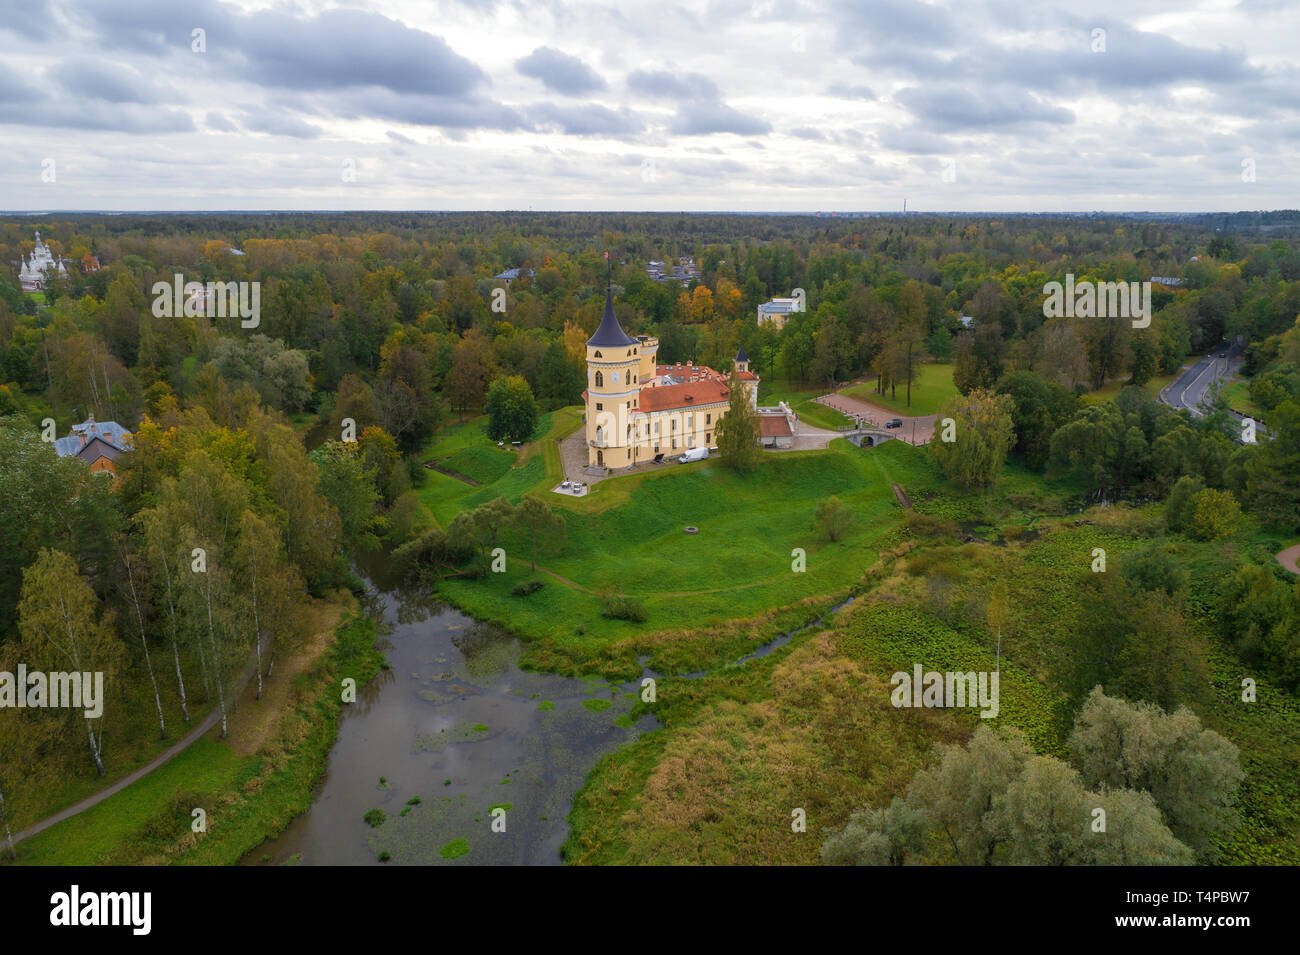 Bip Castle in the autumn landscape (aerial photography). Pavlovsk, neighborhood of St. Petersburg, Russia - Stock Image